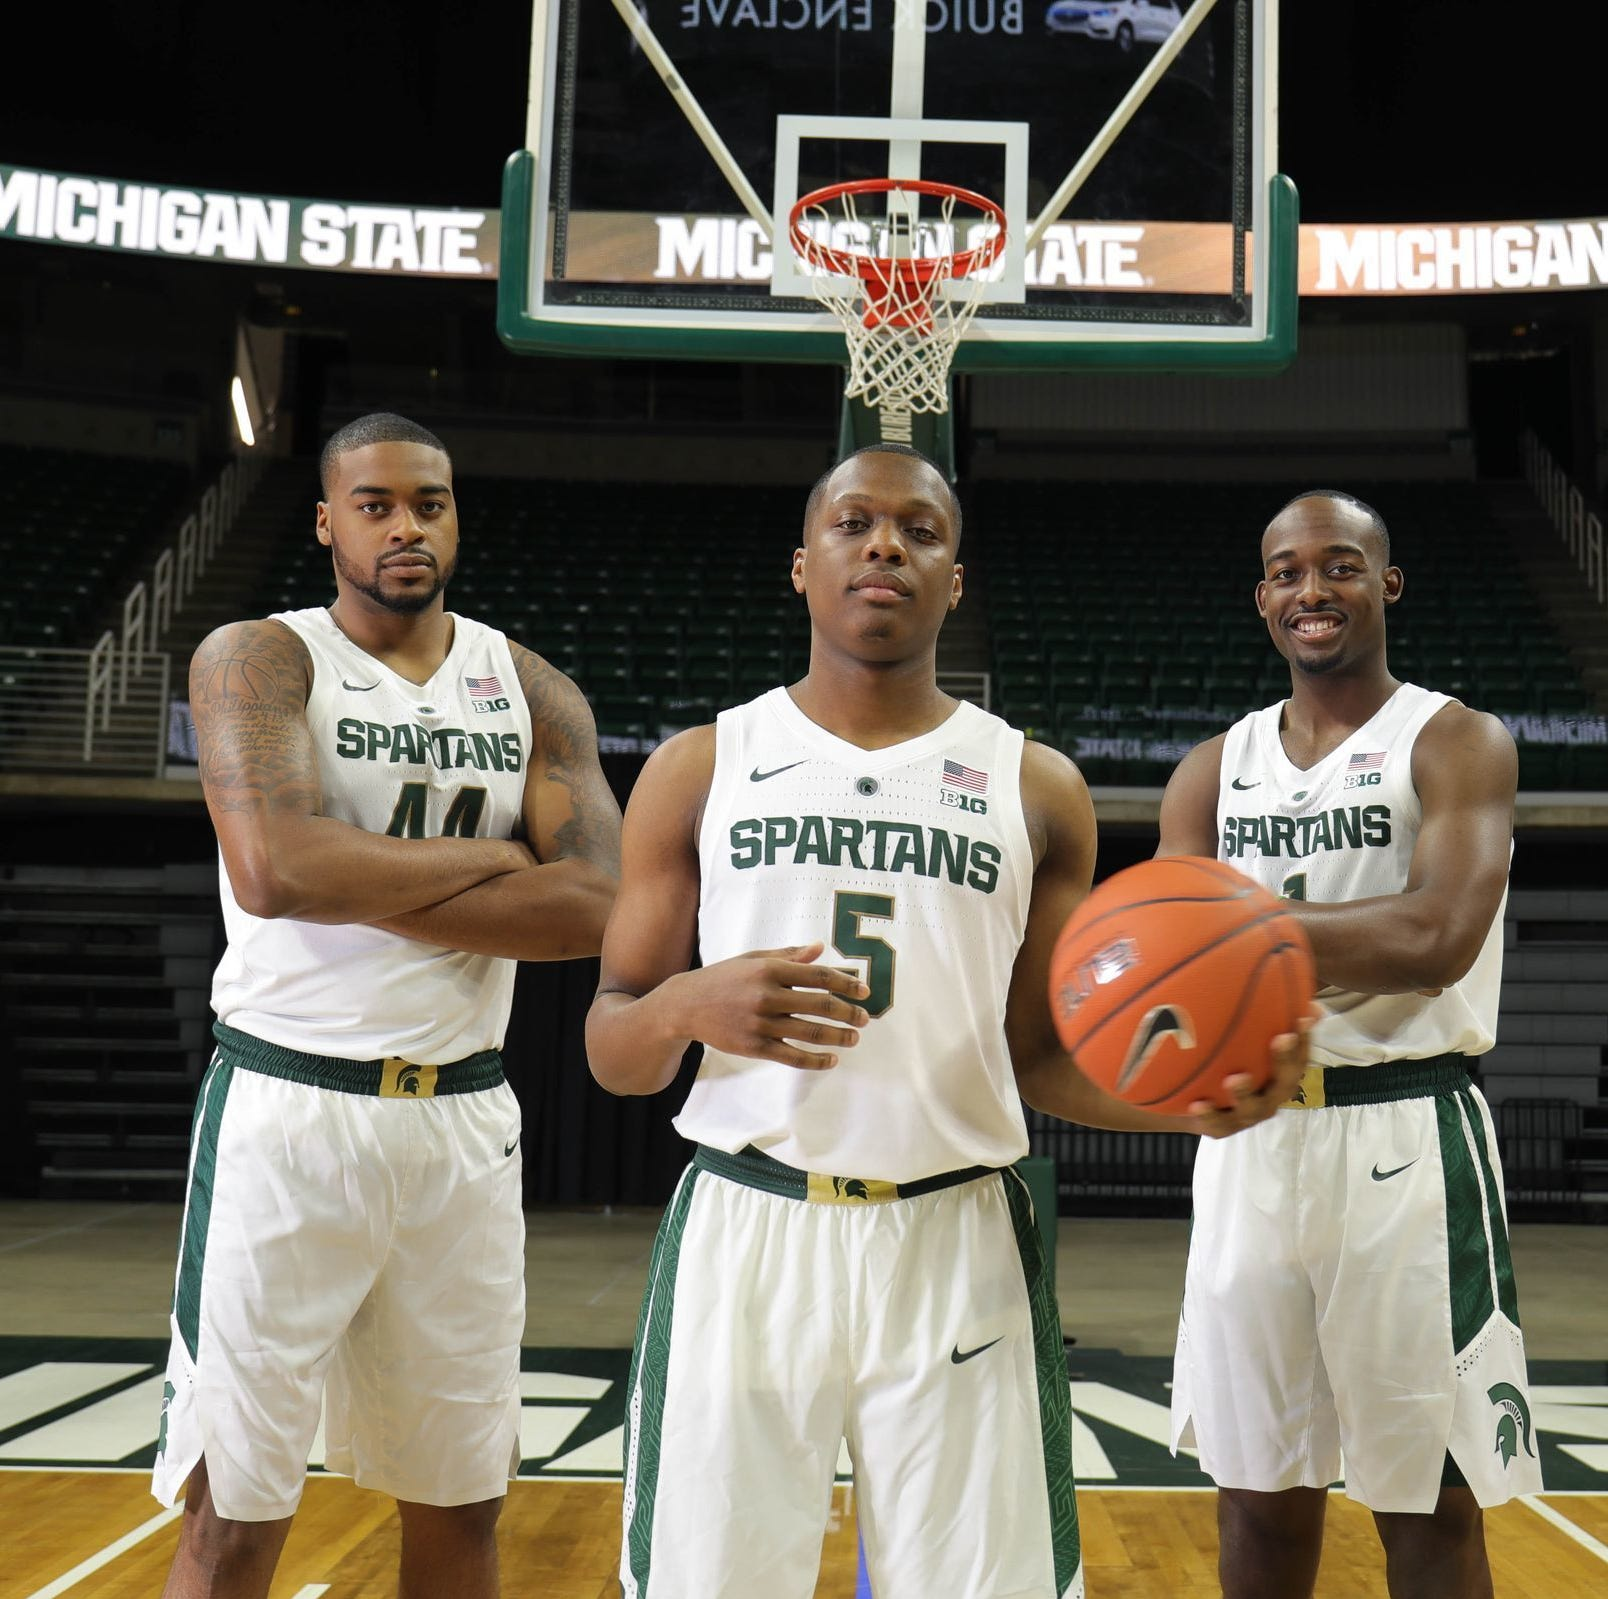 Michigan State basketball 2019-20 roster analysis: This could be top-5 team